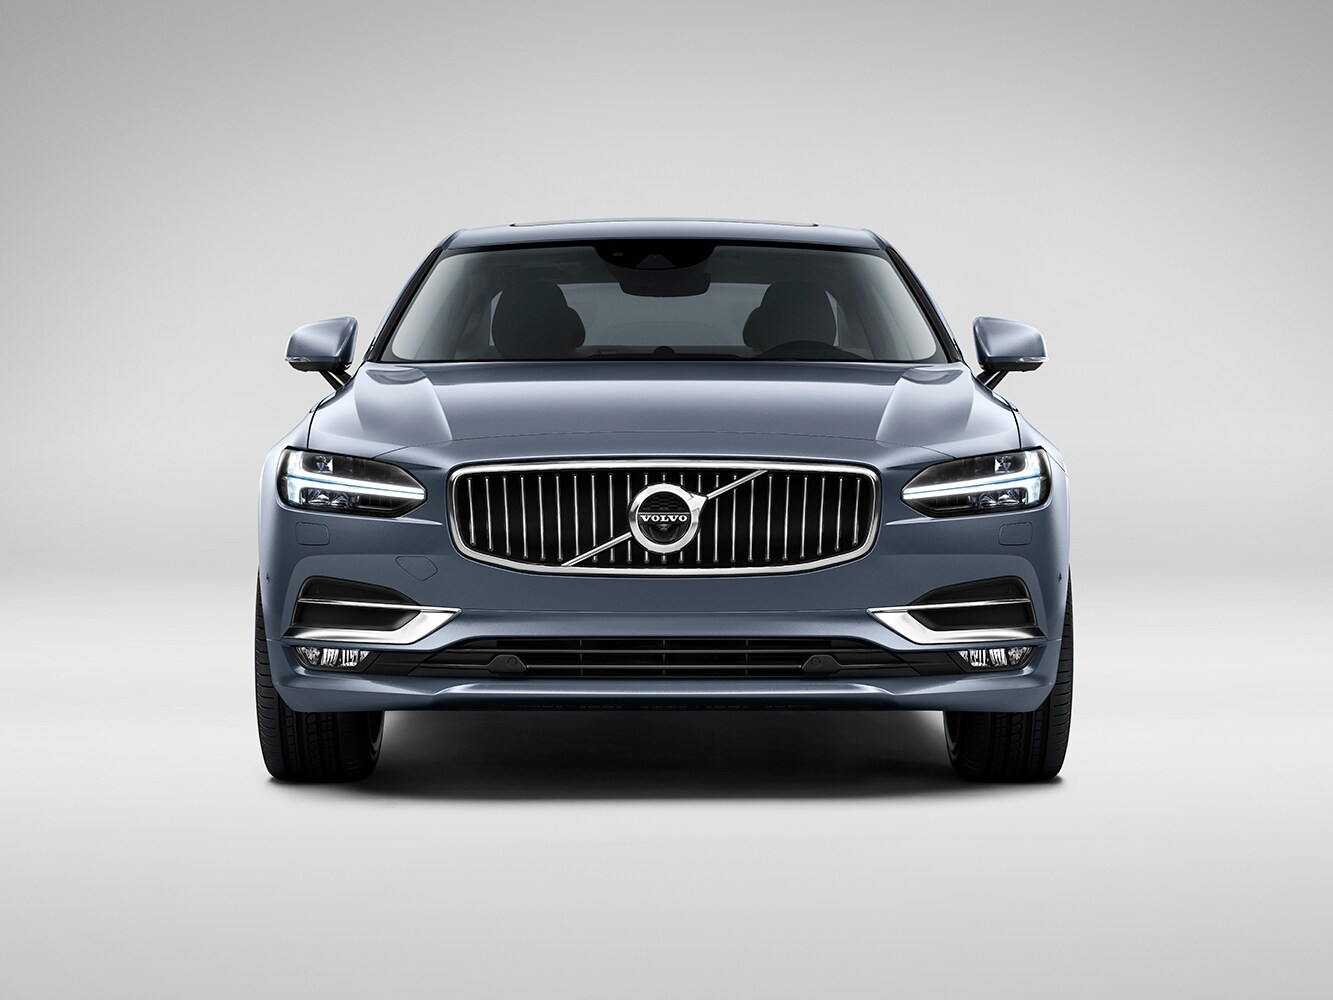 Vista frontal Volvo S90 Inscription